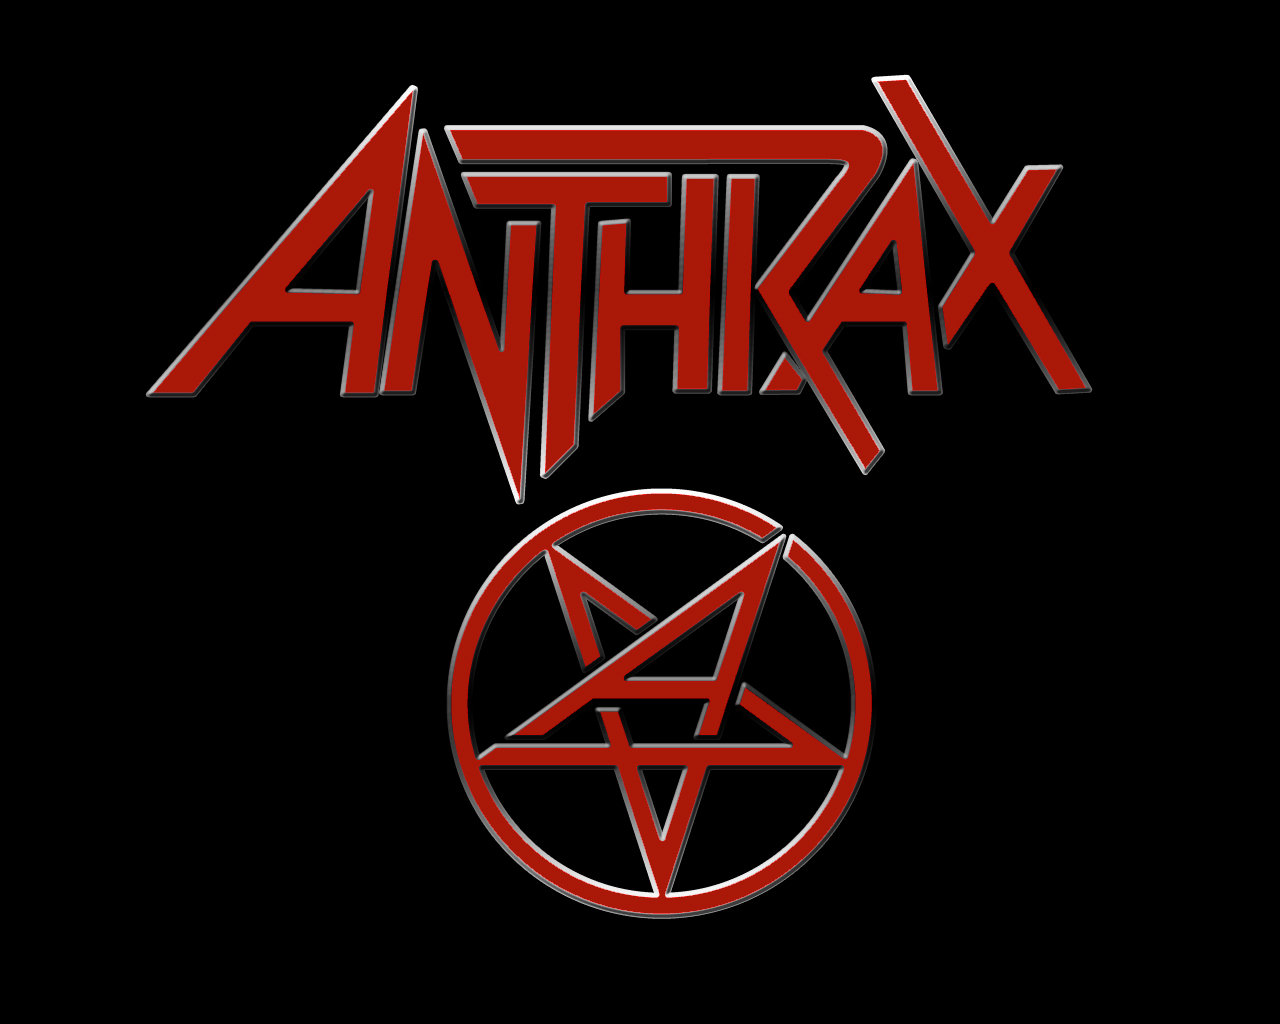 an introduction to the issue of anthrax Abstract and introduction context: incidents involving anthrax (bacillus anthracis) in order to examine this issue.